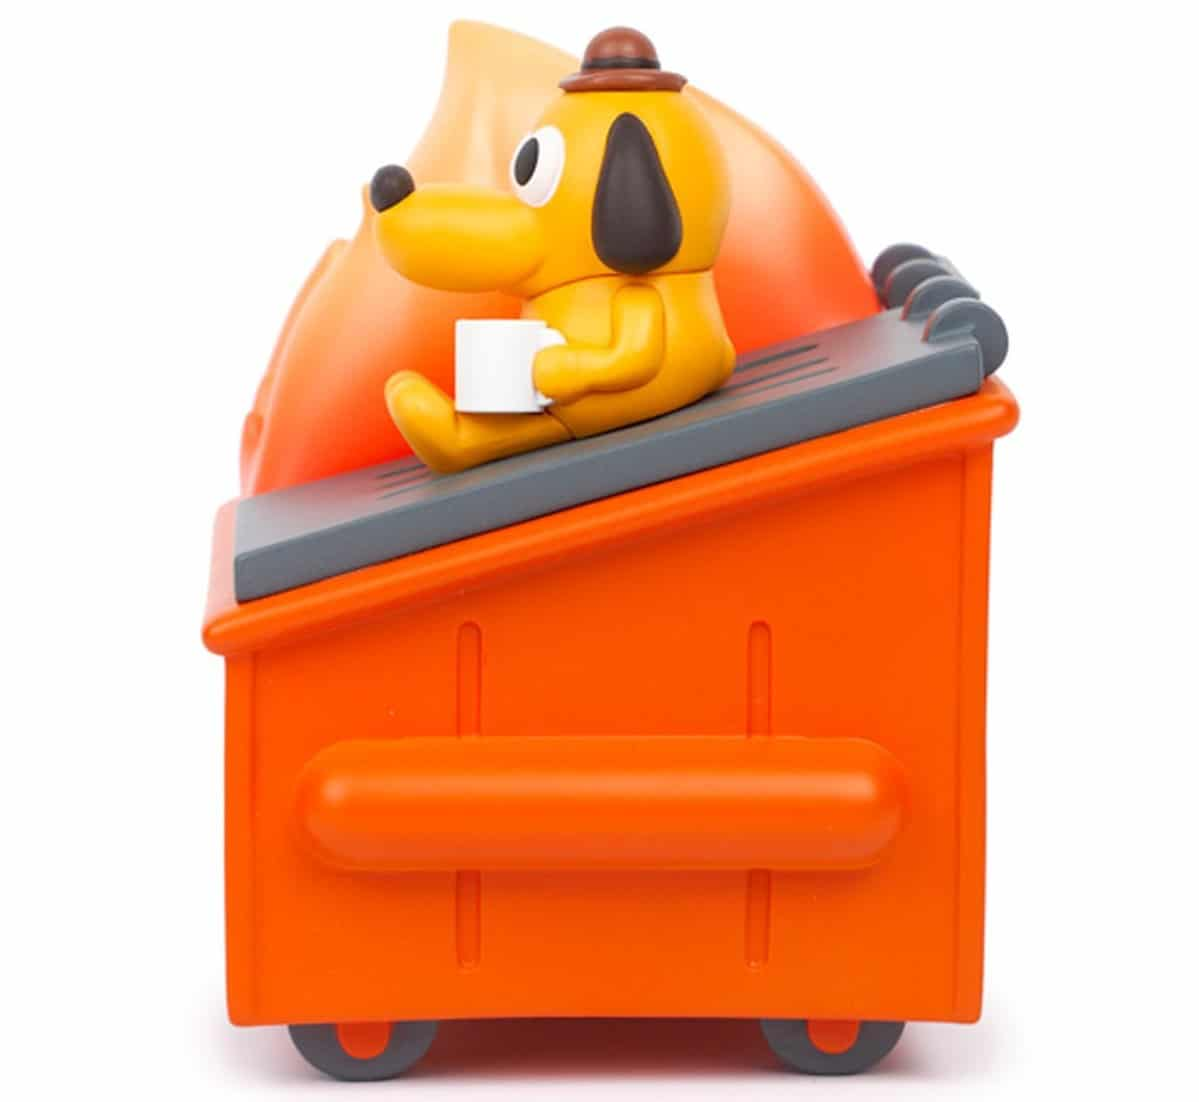 Dumpster Fire meets This is Fine dog in this adorable vinyl figure 18